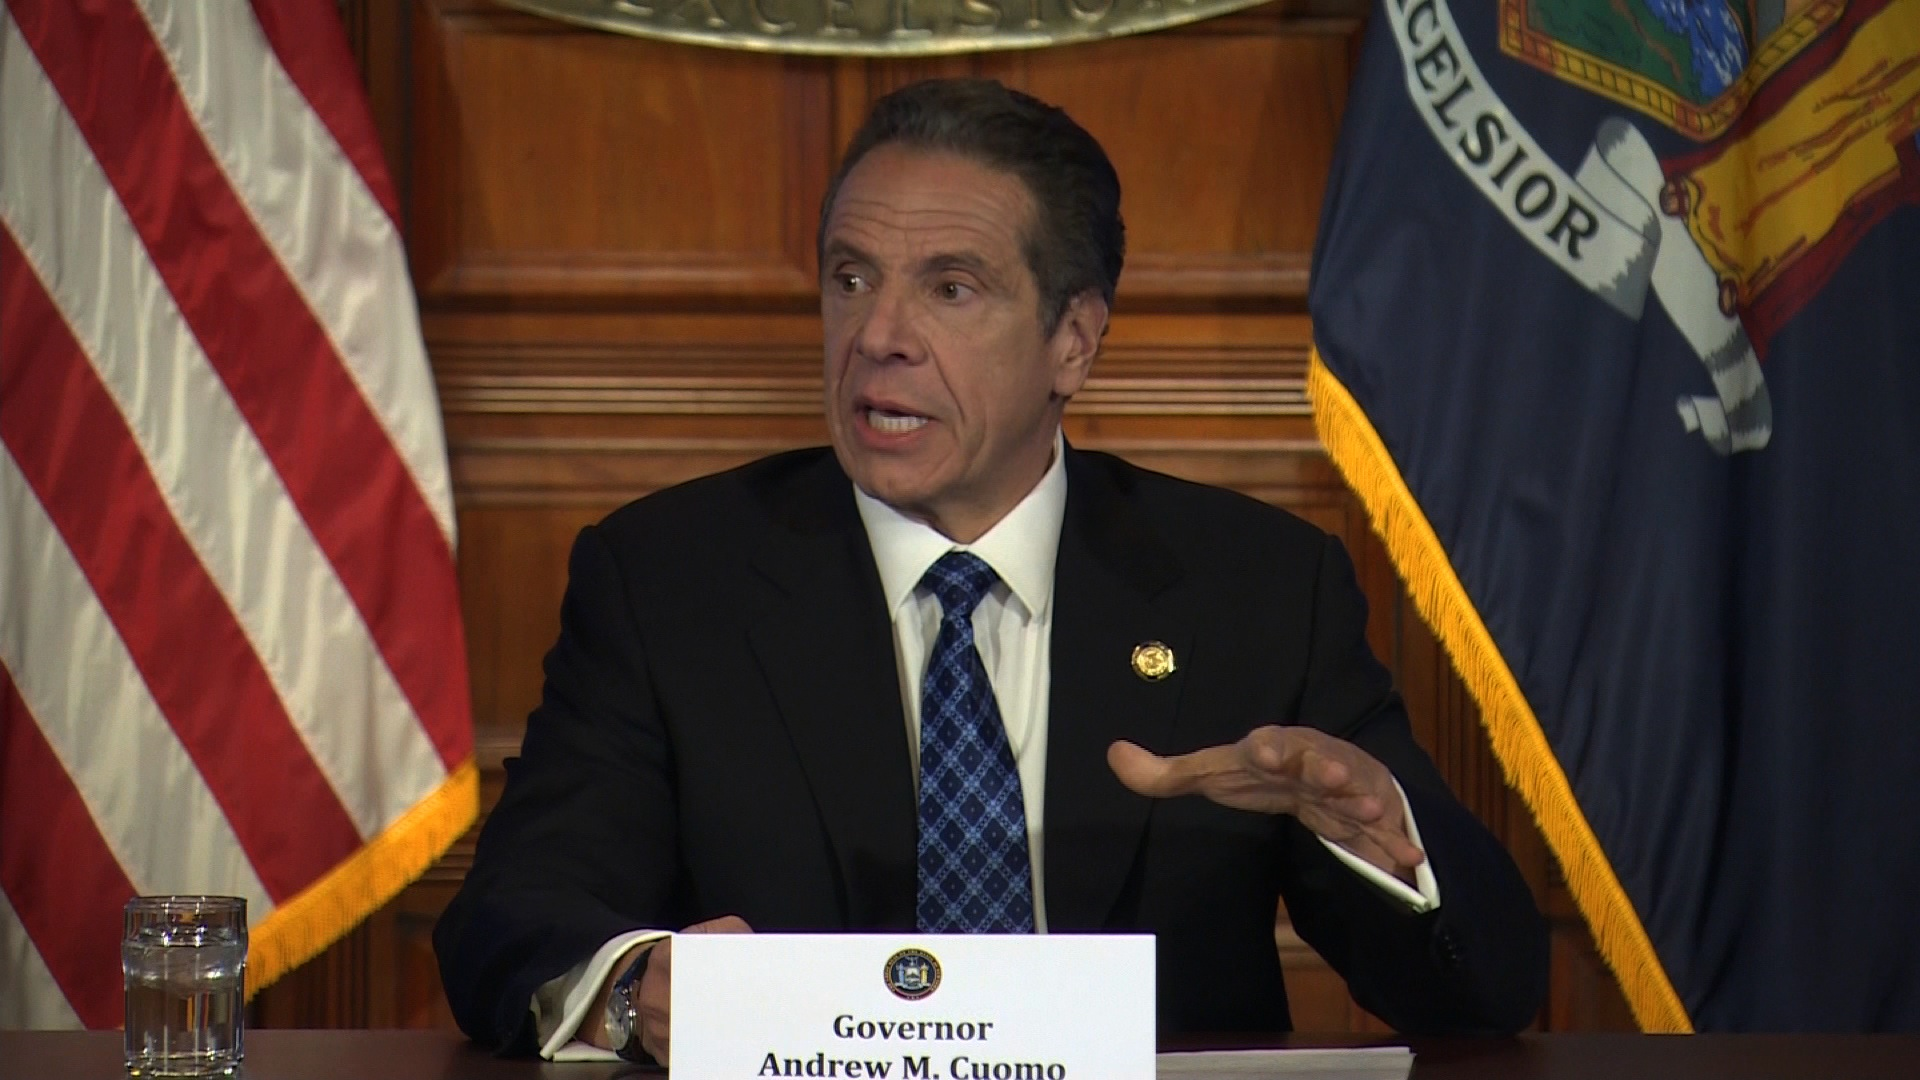 New York Gov. Andrew Cuomo speaks at a press conference at the State Capital in Albany, on April 24.